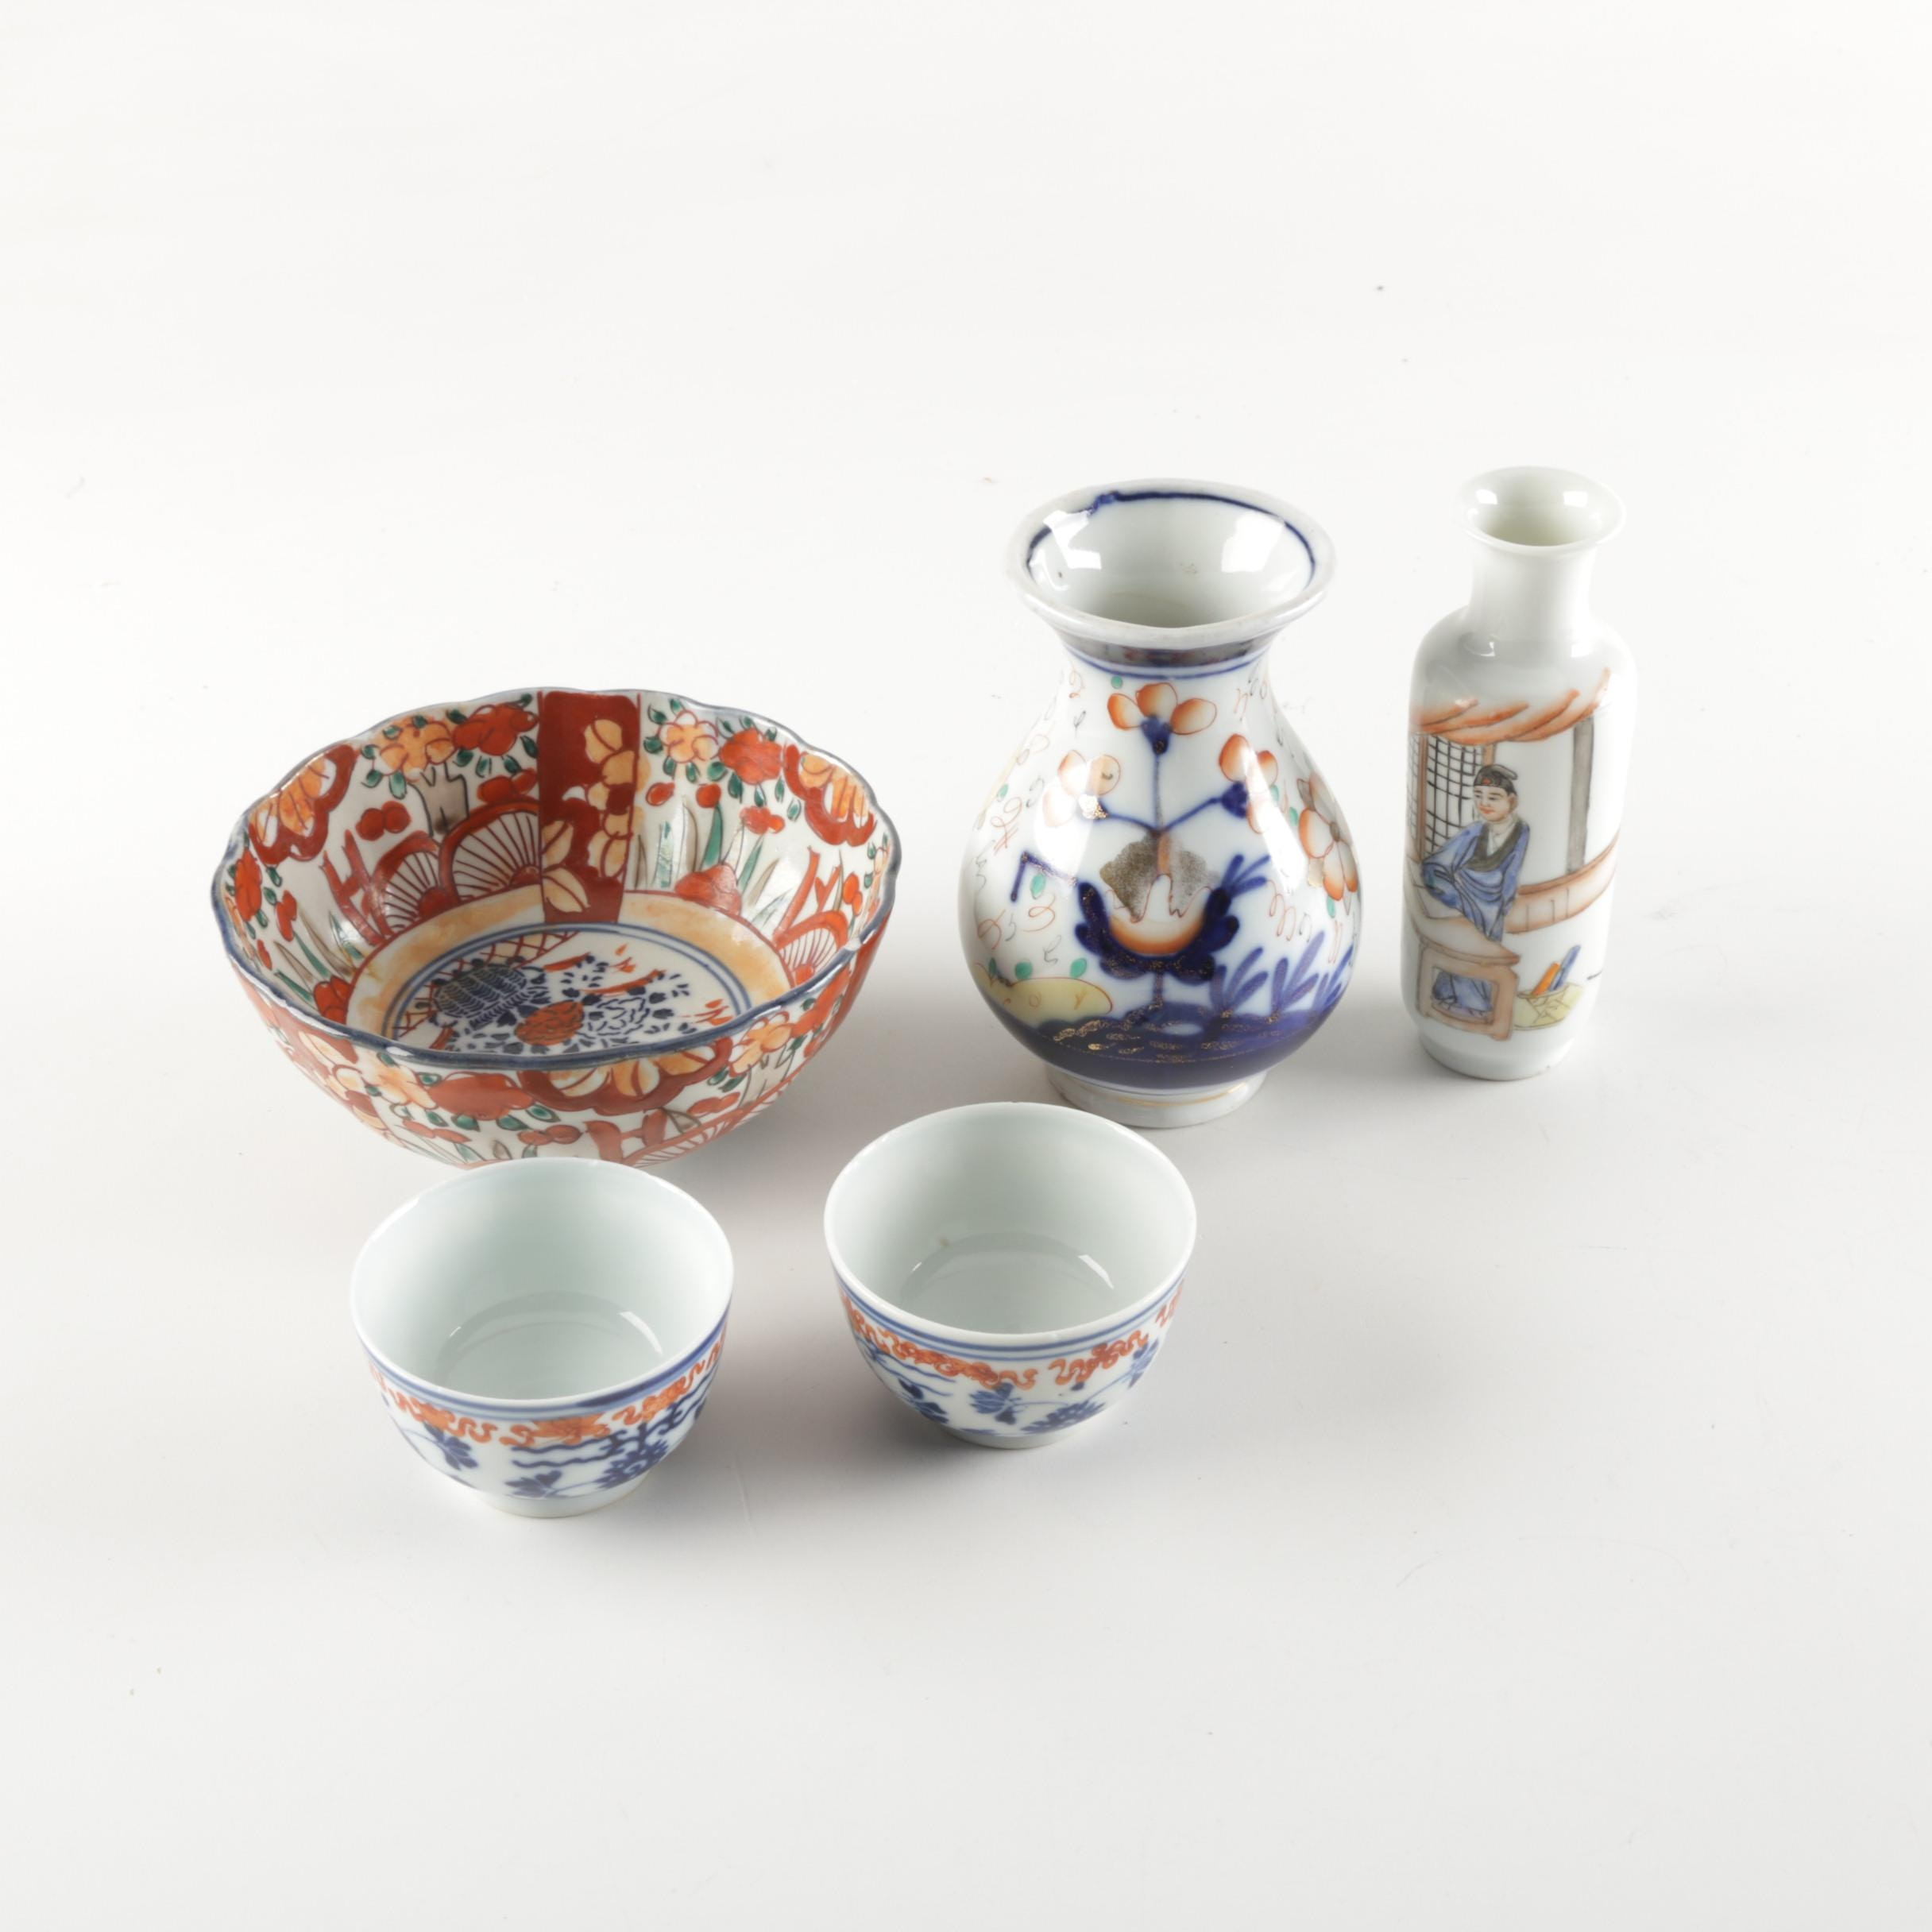 Asian Inspired Porcelain Vases and Tableware